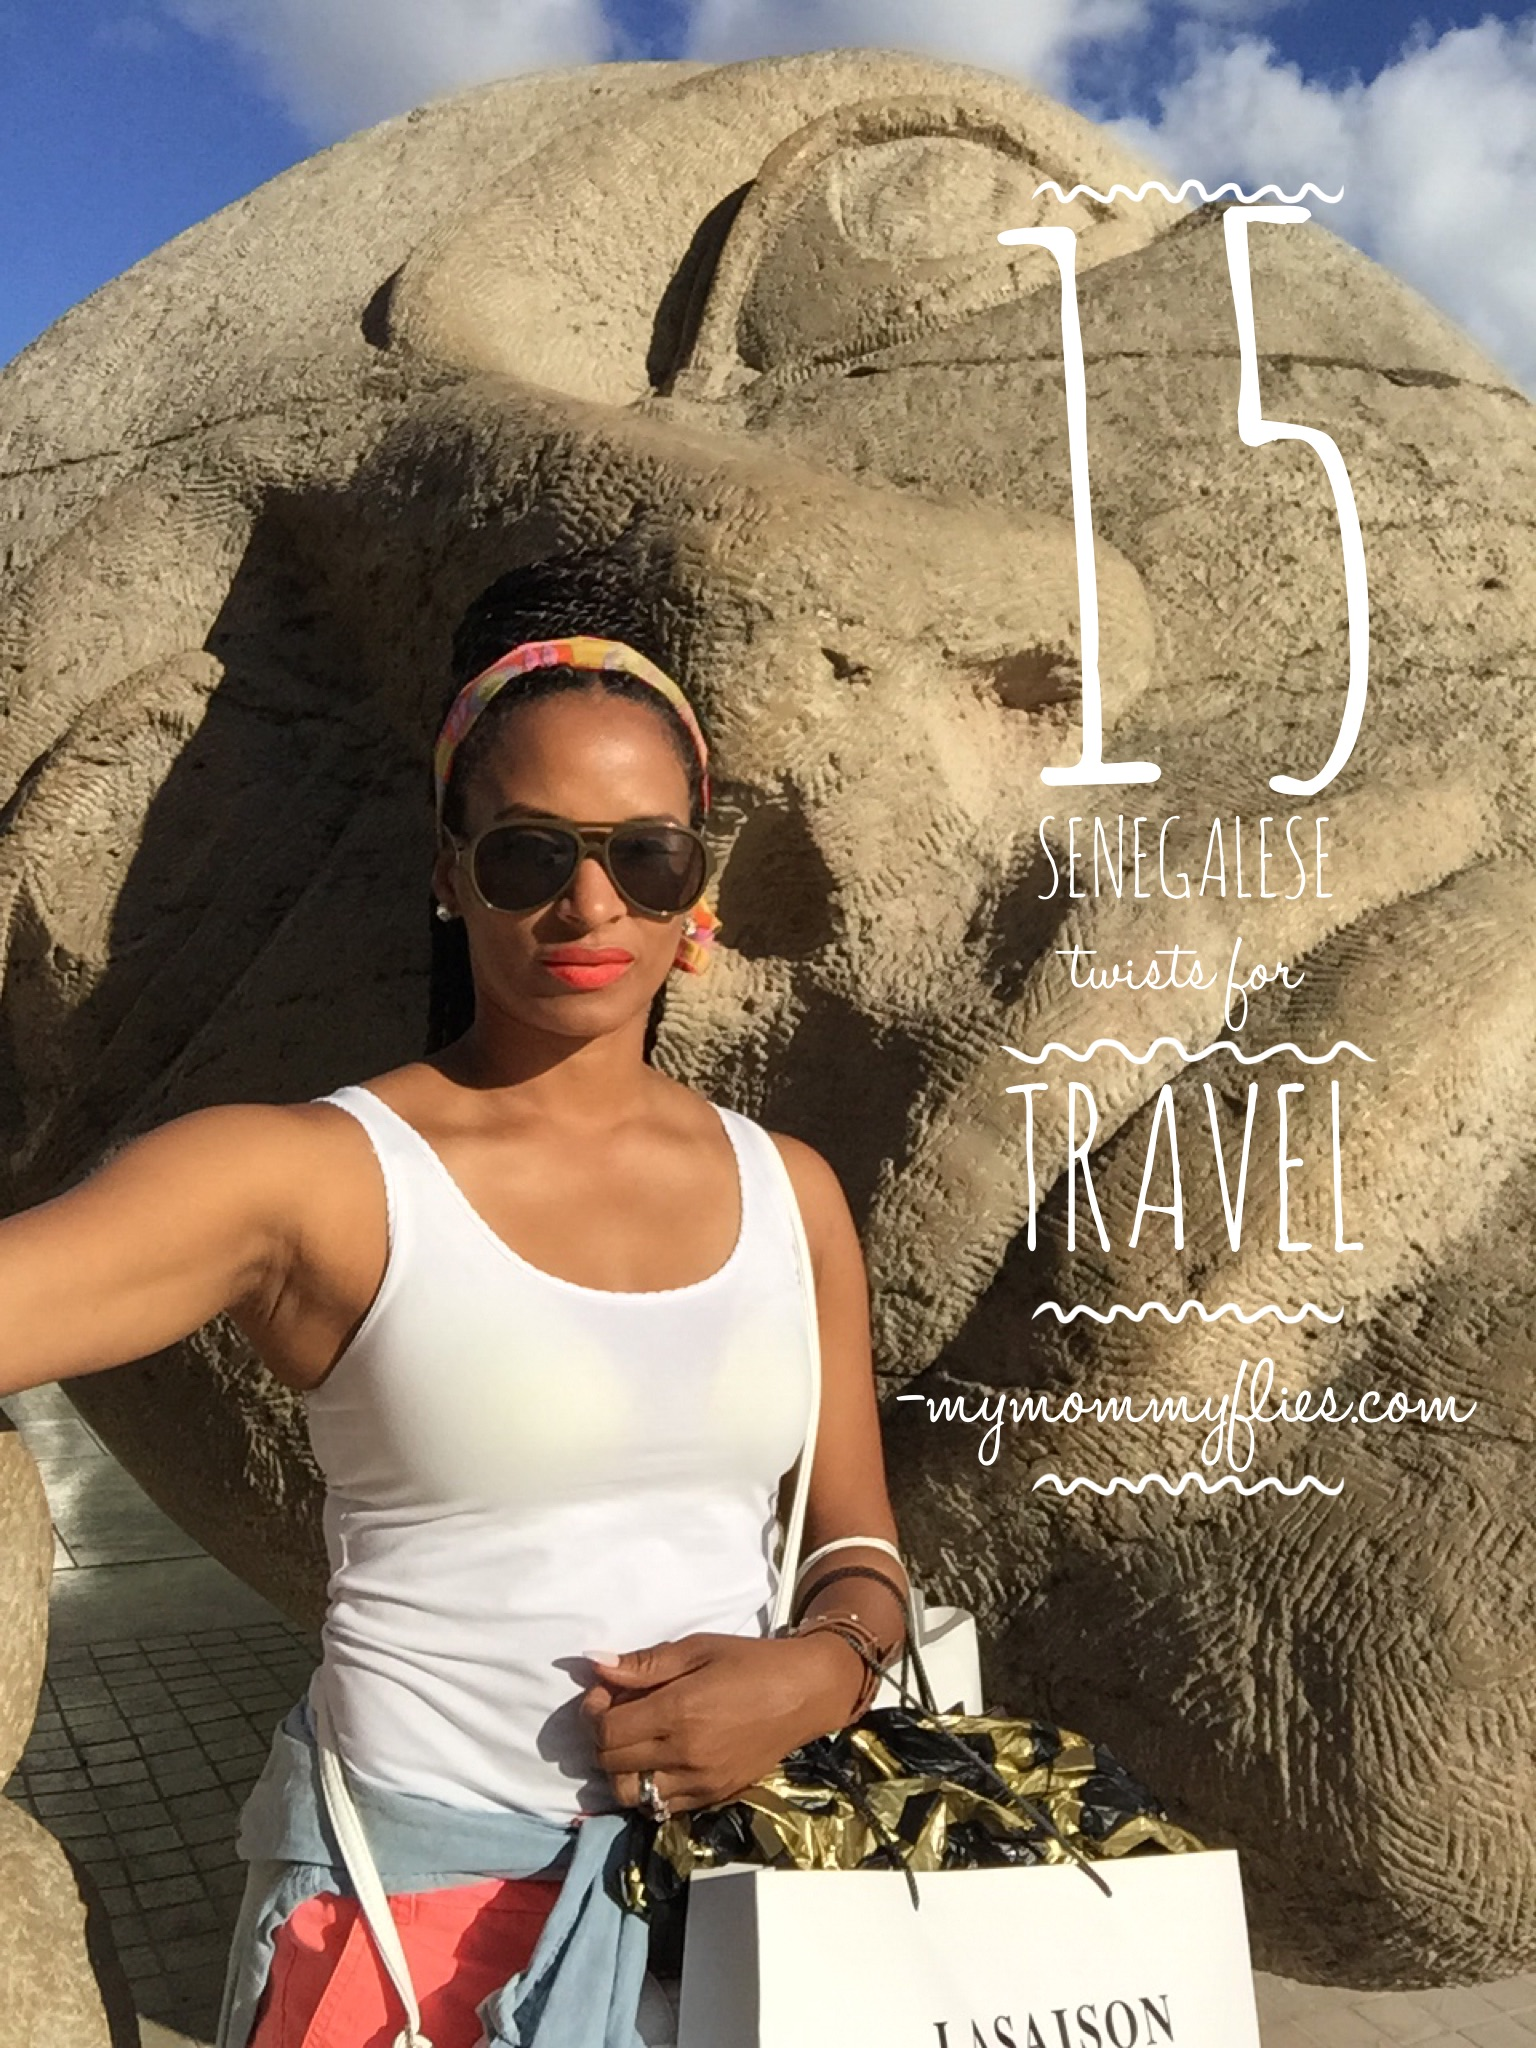 Surprising 15 Easy Senegalese Twists Hair Styles For Travel My Mommy Flies Short Hairstyles Gunalazisus